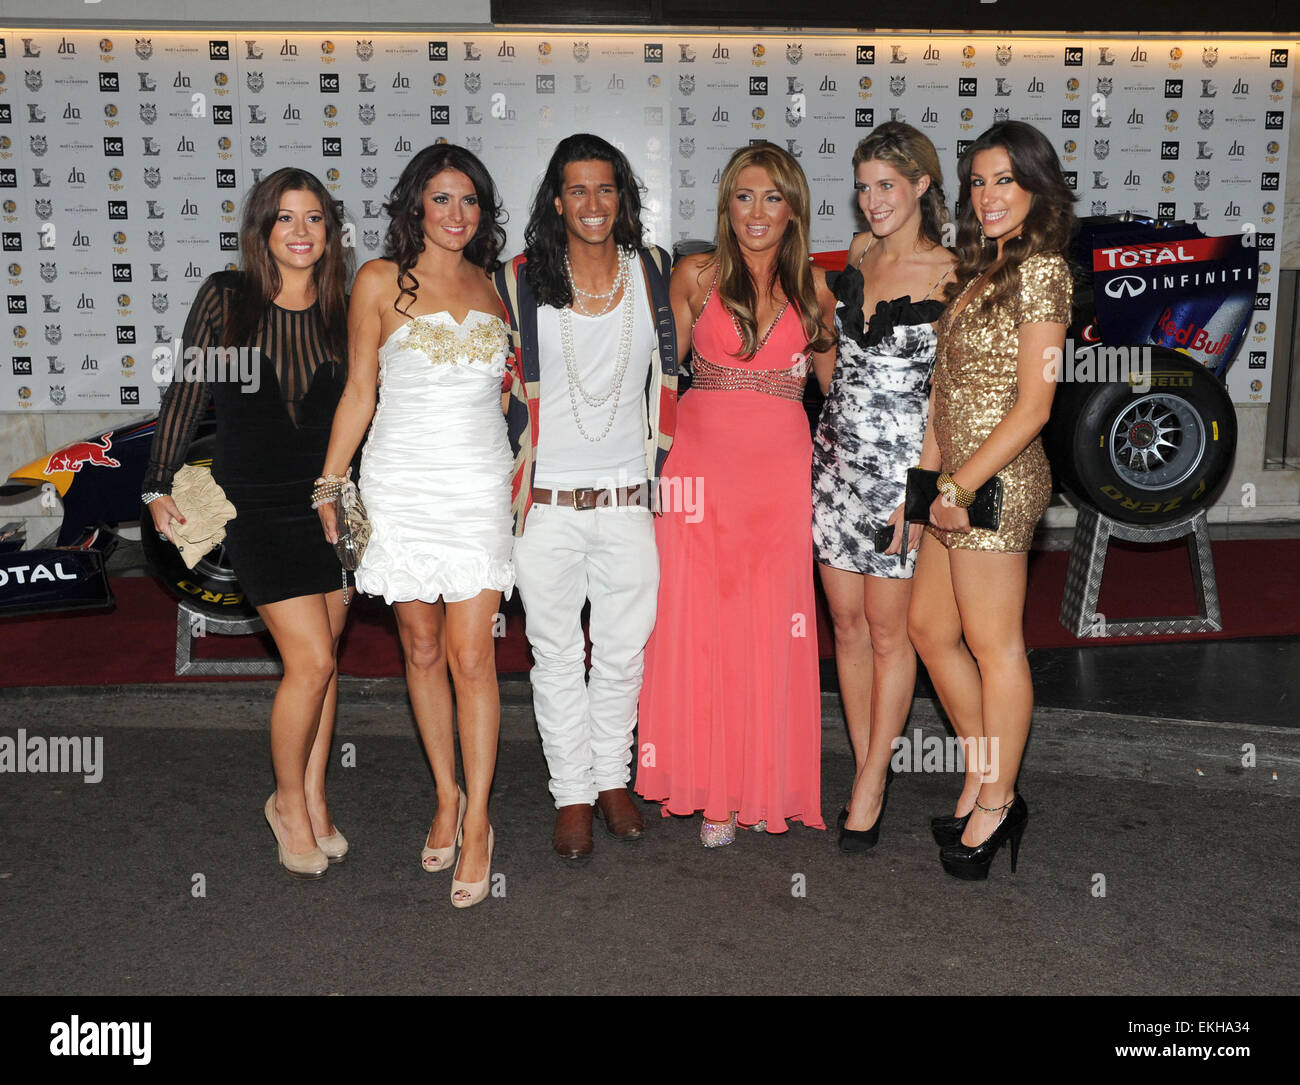 06.JUNE.2011. LONDON  THE ONLY WAY IS ESSEX STAR LAUREN GOODGER WITH THE CAST OF THE TV REALITY SERIES MADE IN CHELSEA - Stock Image